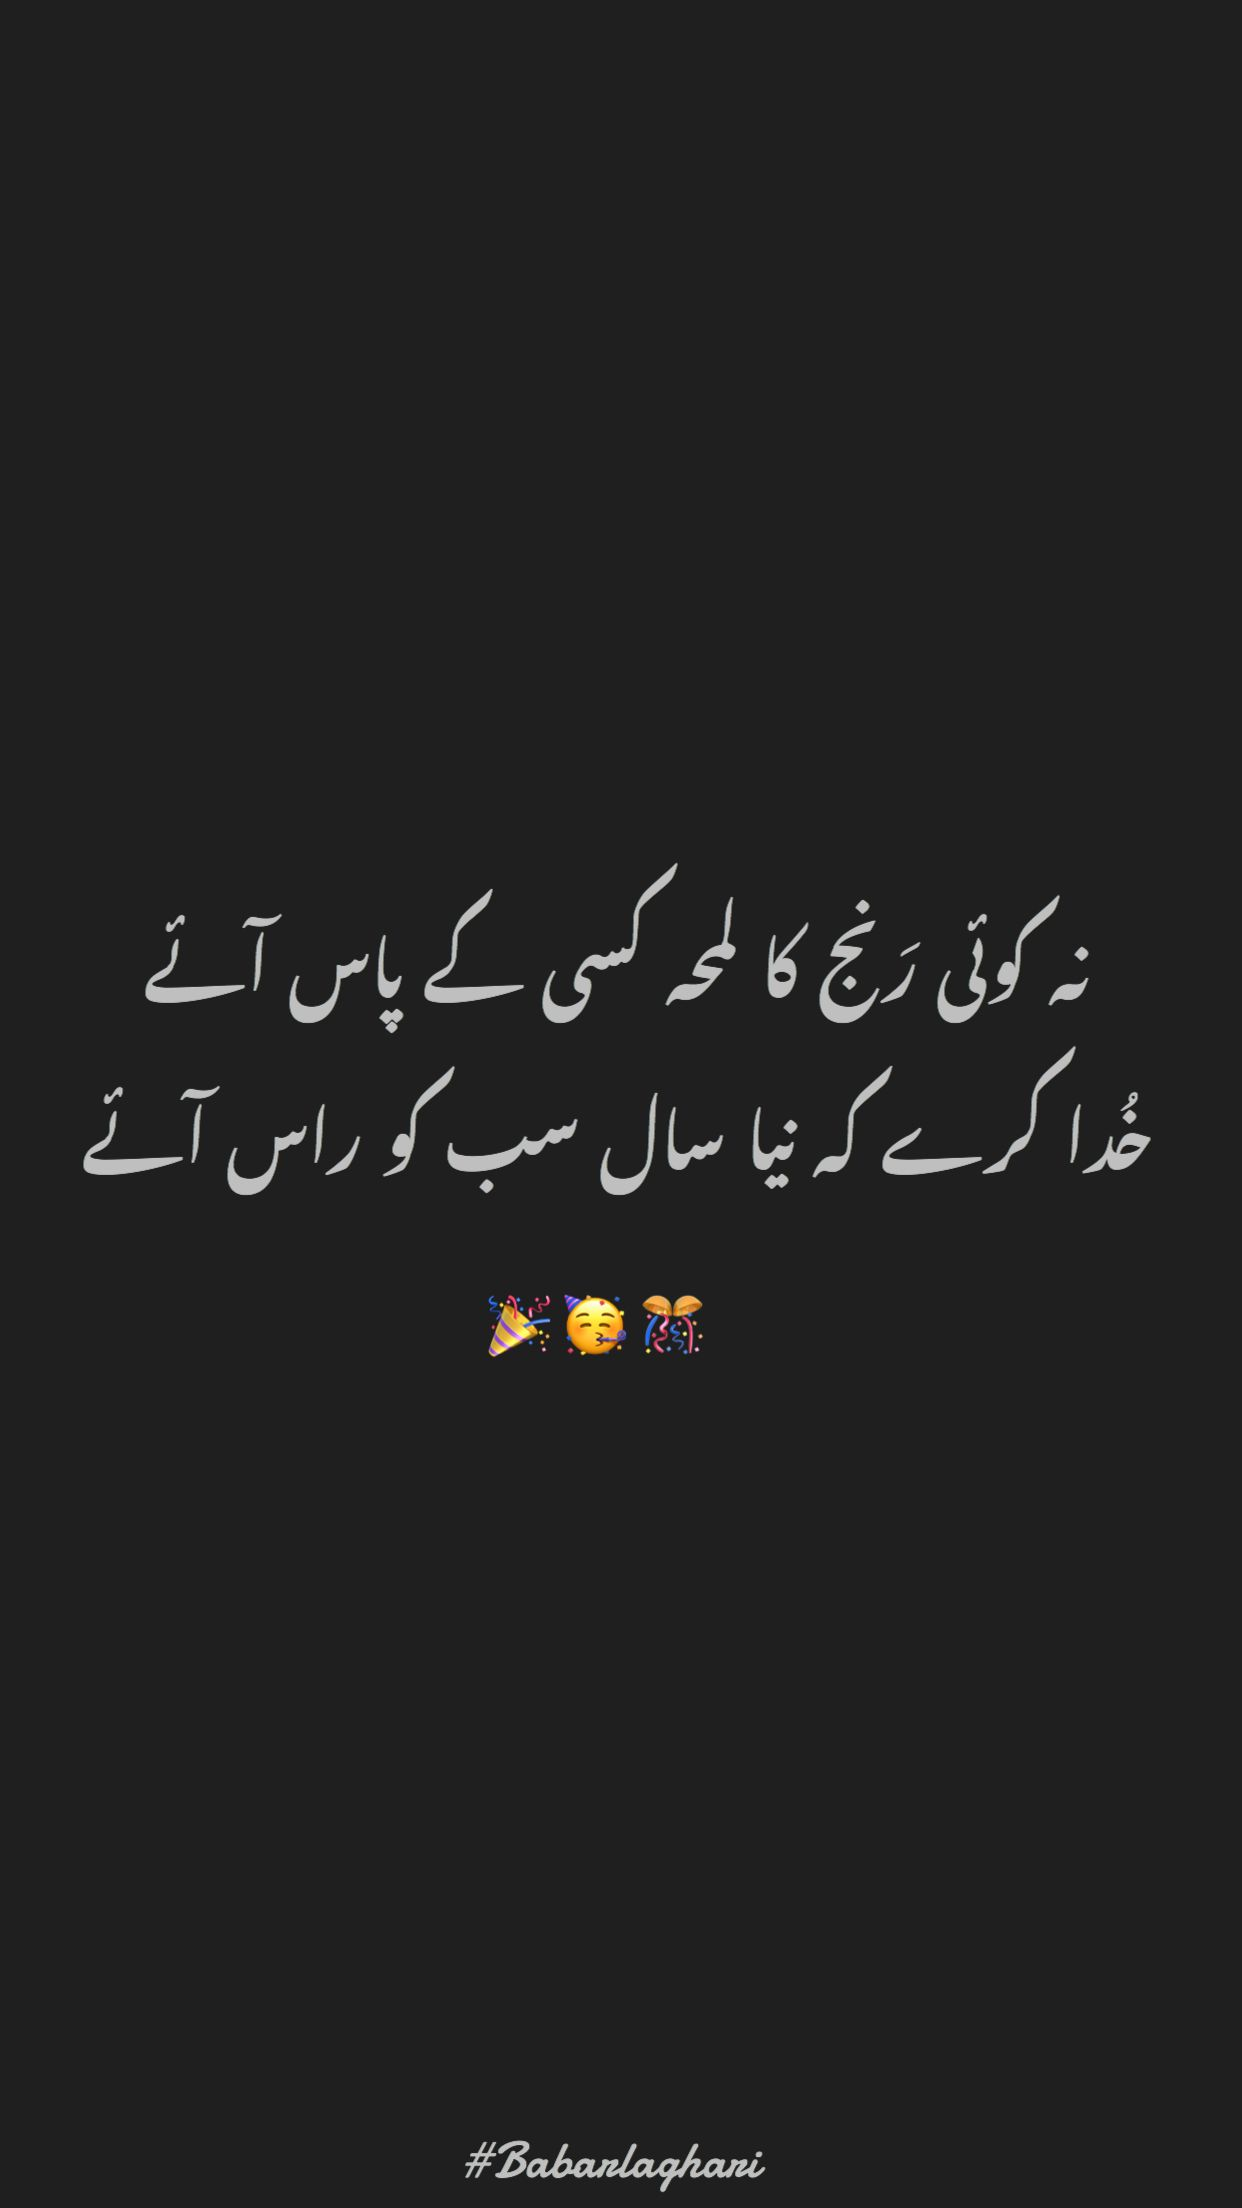 Happy New Year 2020 Quotes About New Year Urdu Words Happy New Year 2020